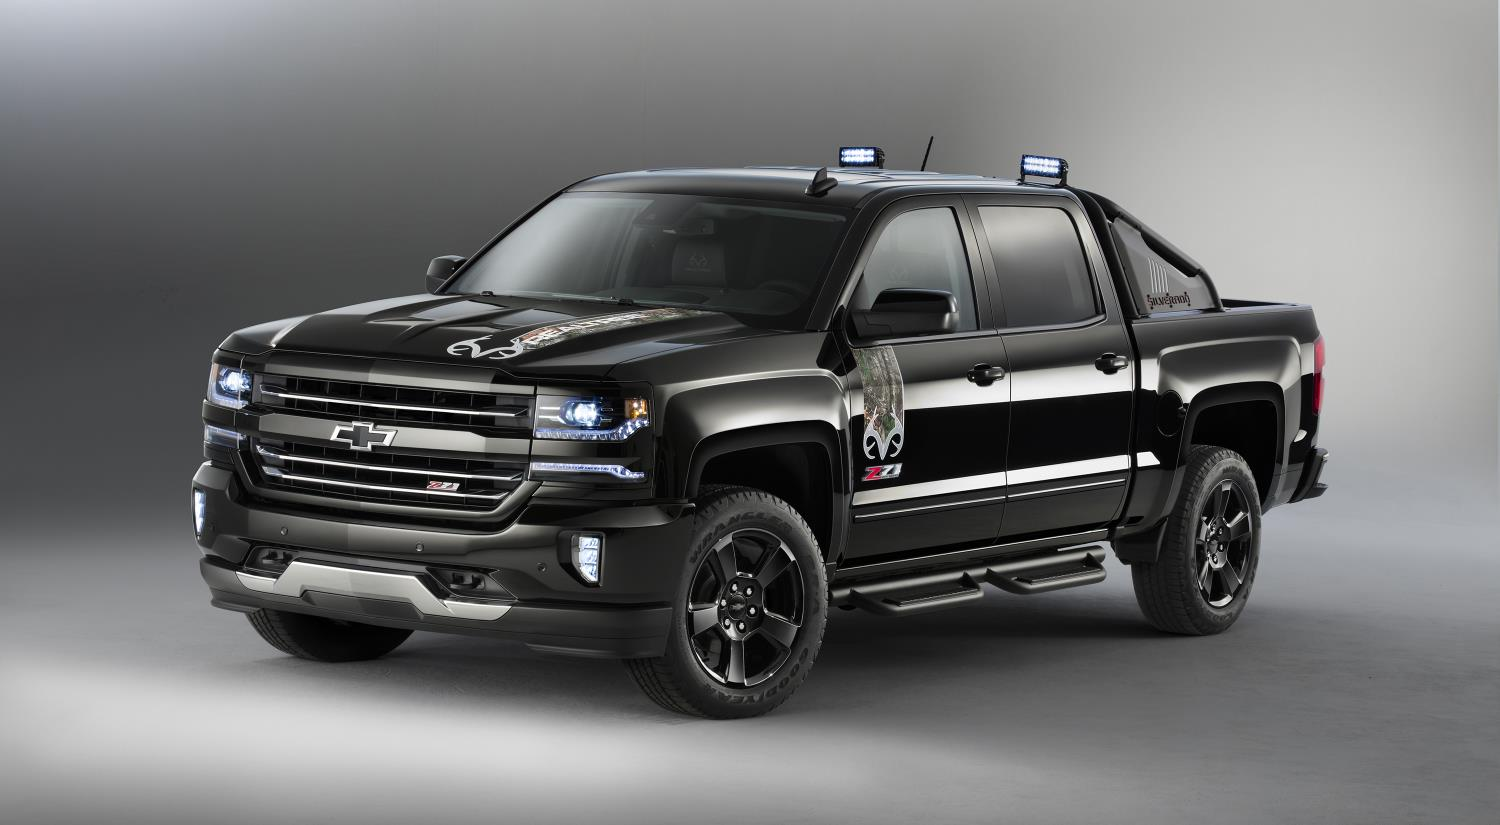 2016 Chevrolet Silverado Rally Edition Debuts at Texas Motor Speedway - autoevolution